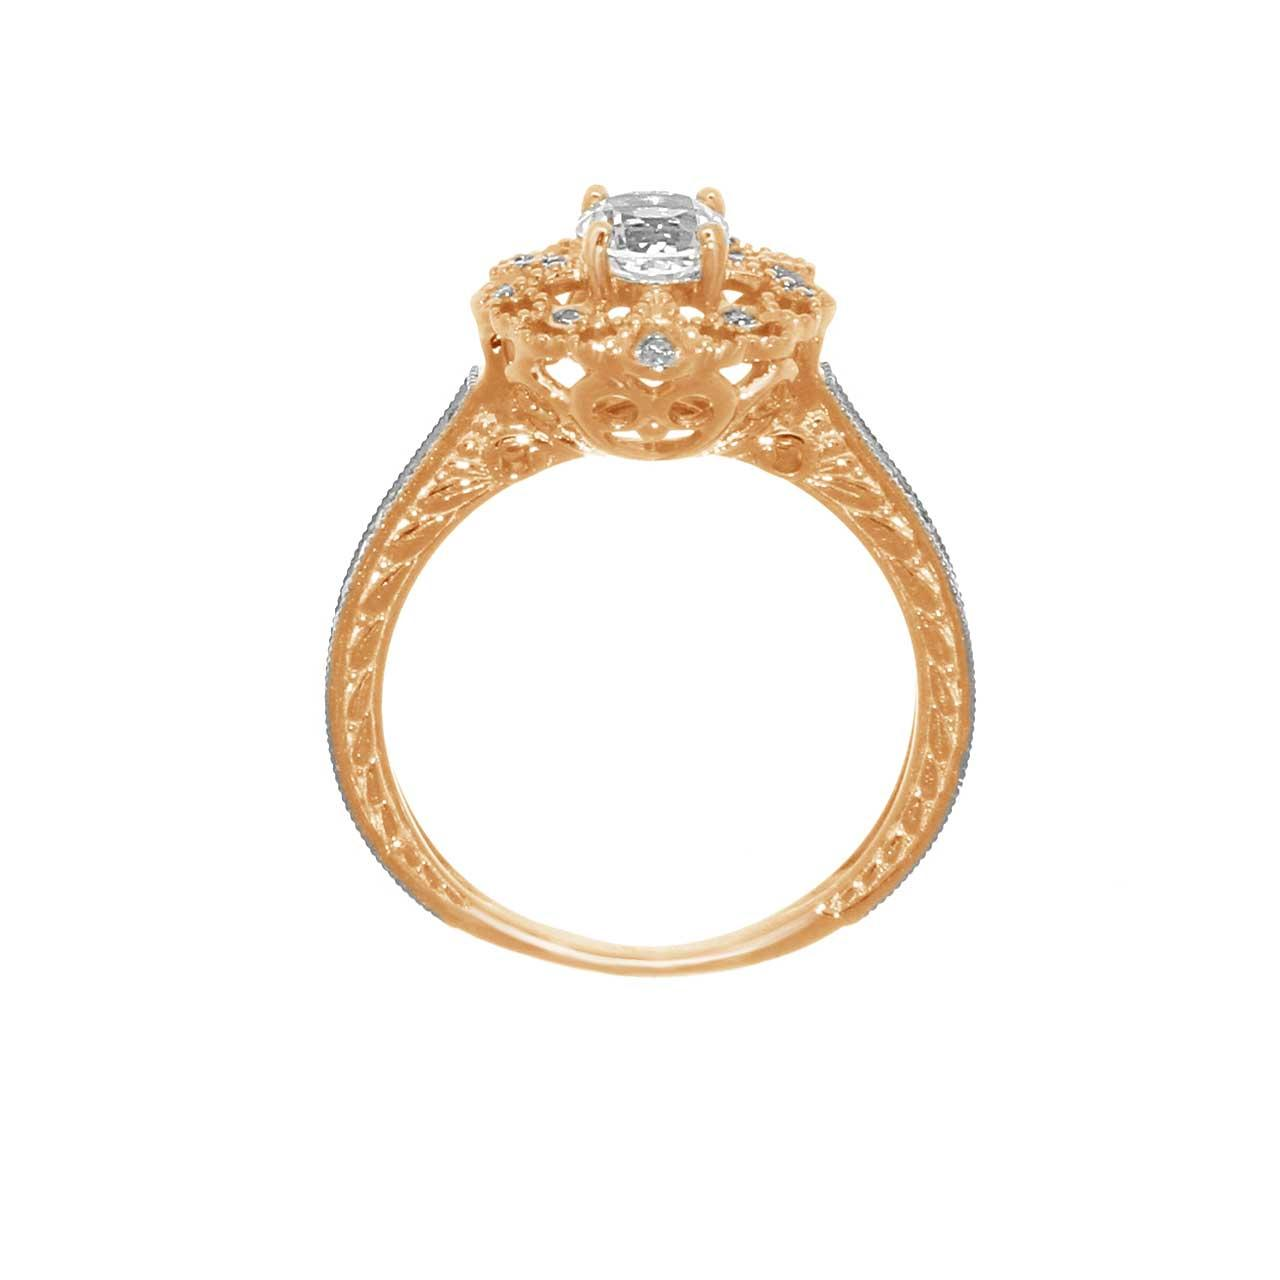 Diamond and topaz ring 2